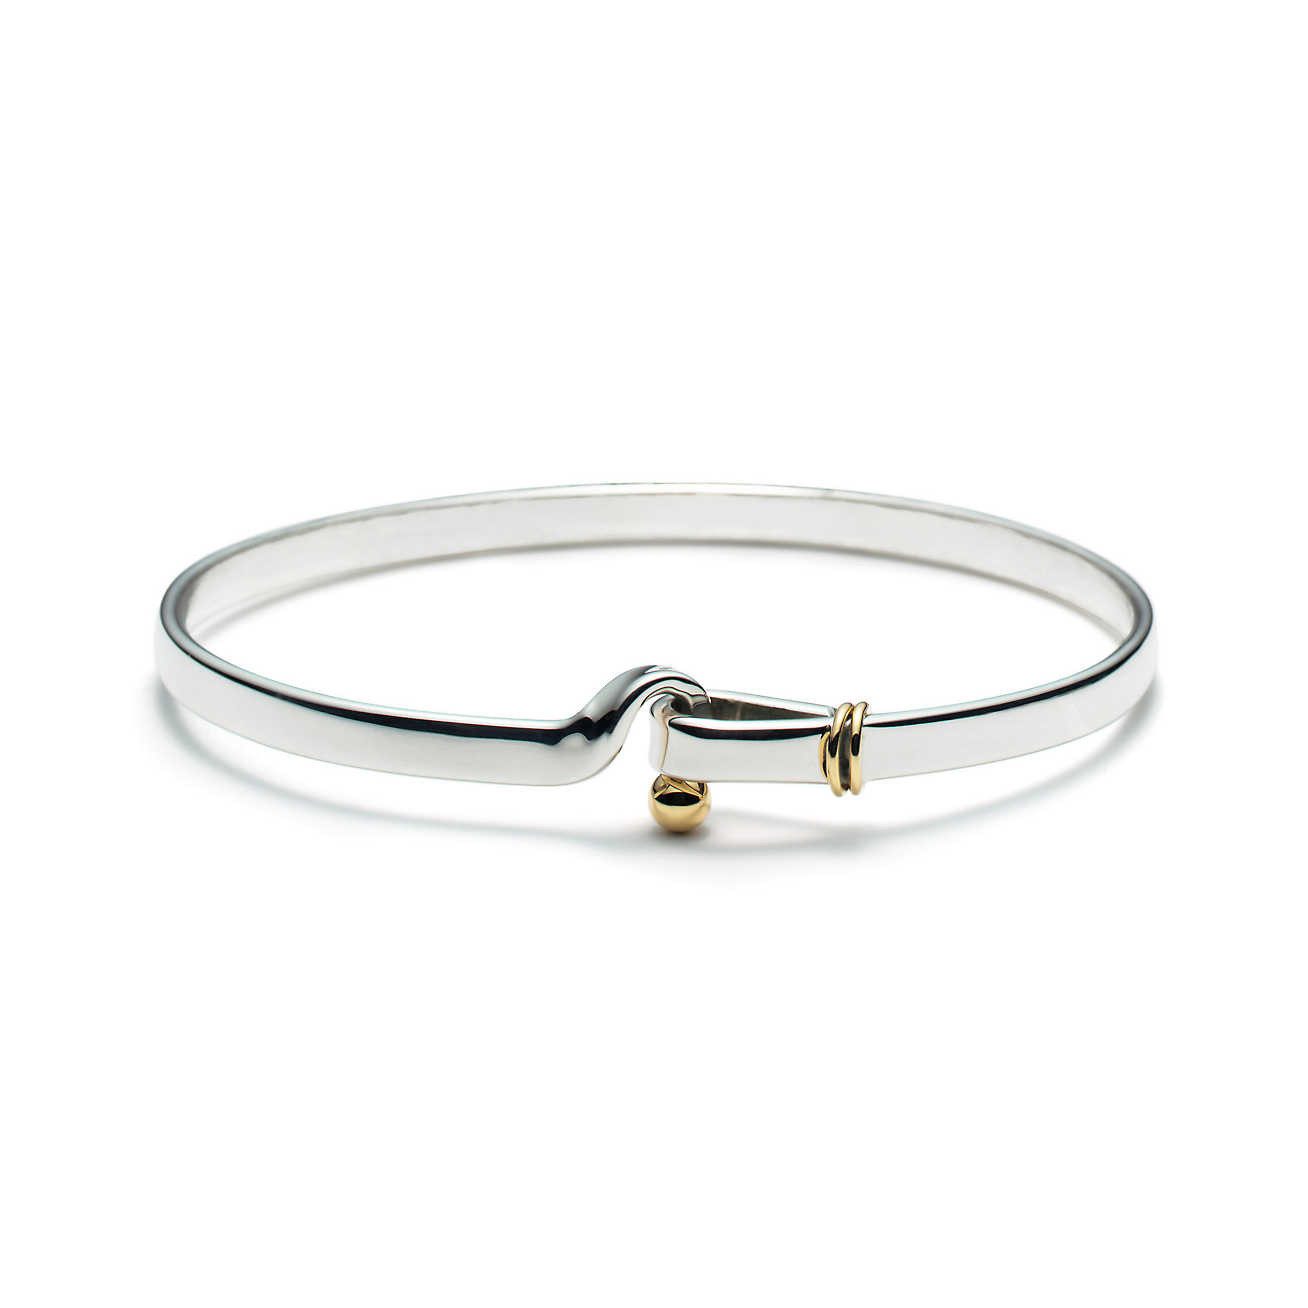 rose and in bangles bangle bracelets with gold bead bracelet silver cape single cod sterling